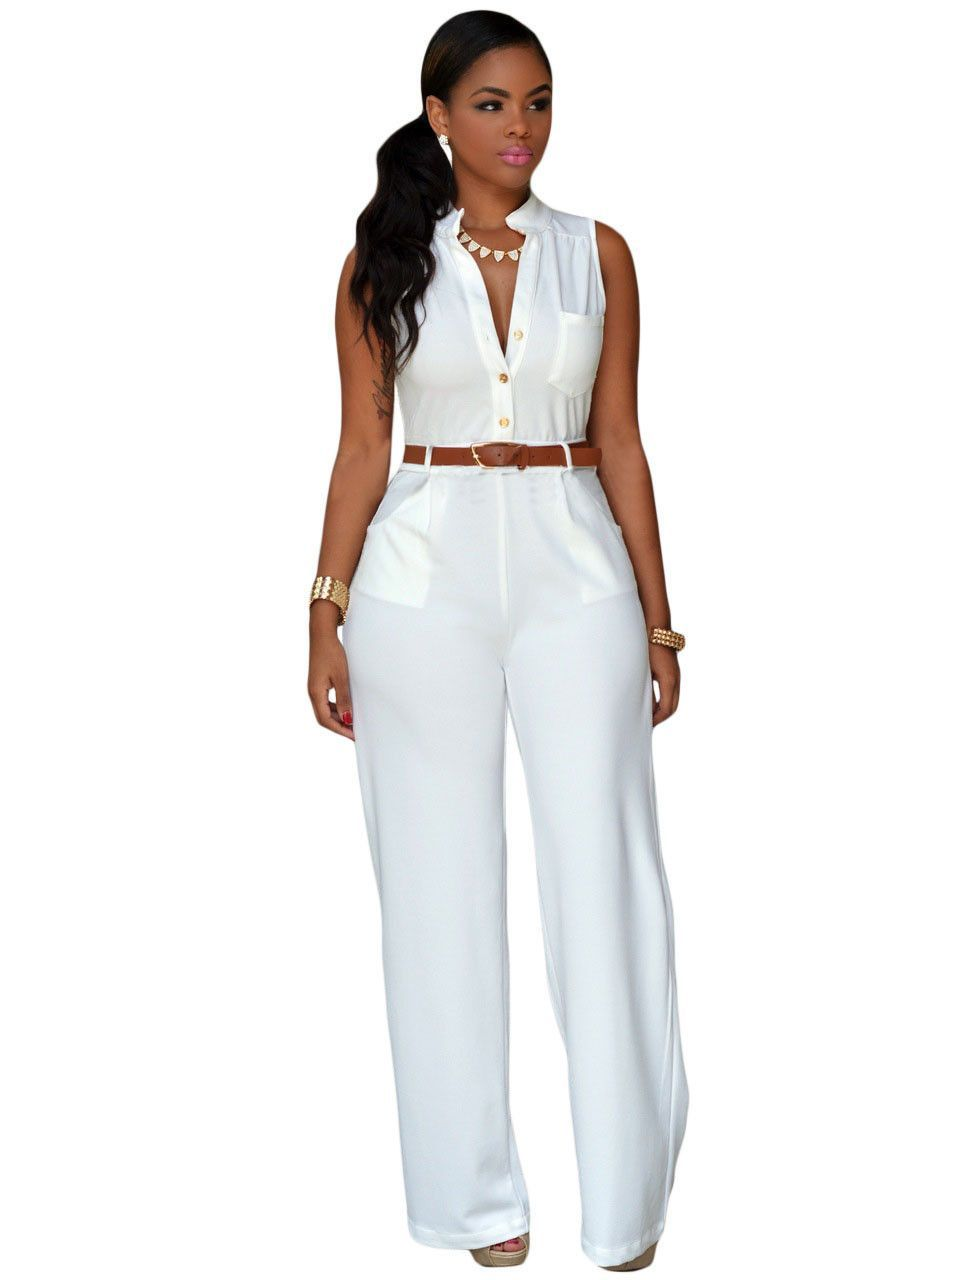 360d76ac091 Zkess Jumpsuit Long Pants Women Rompers Sleeveless 2XL V-neck 2016 Belt  Solid Sexy Night Club Elegant Slim Jumpsuits Overalls